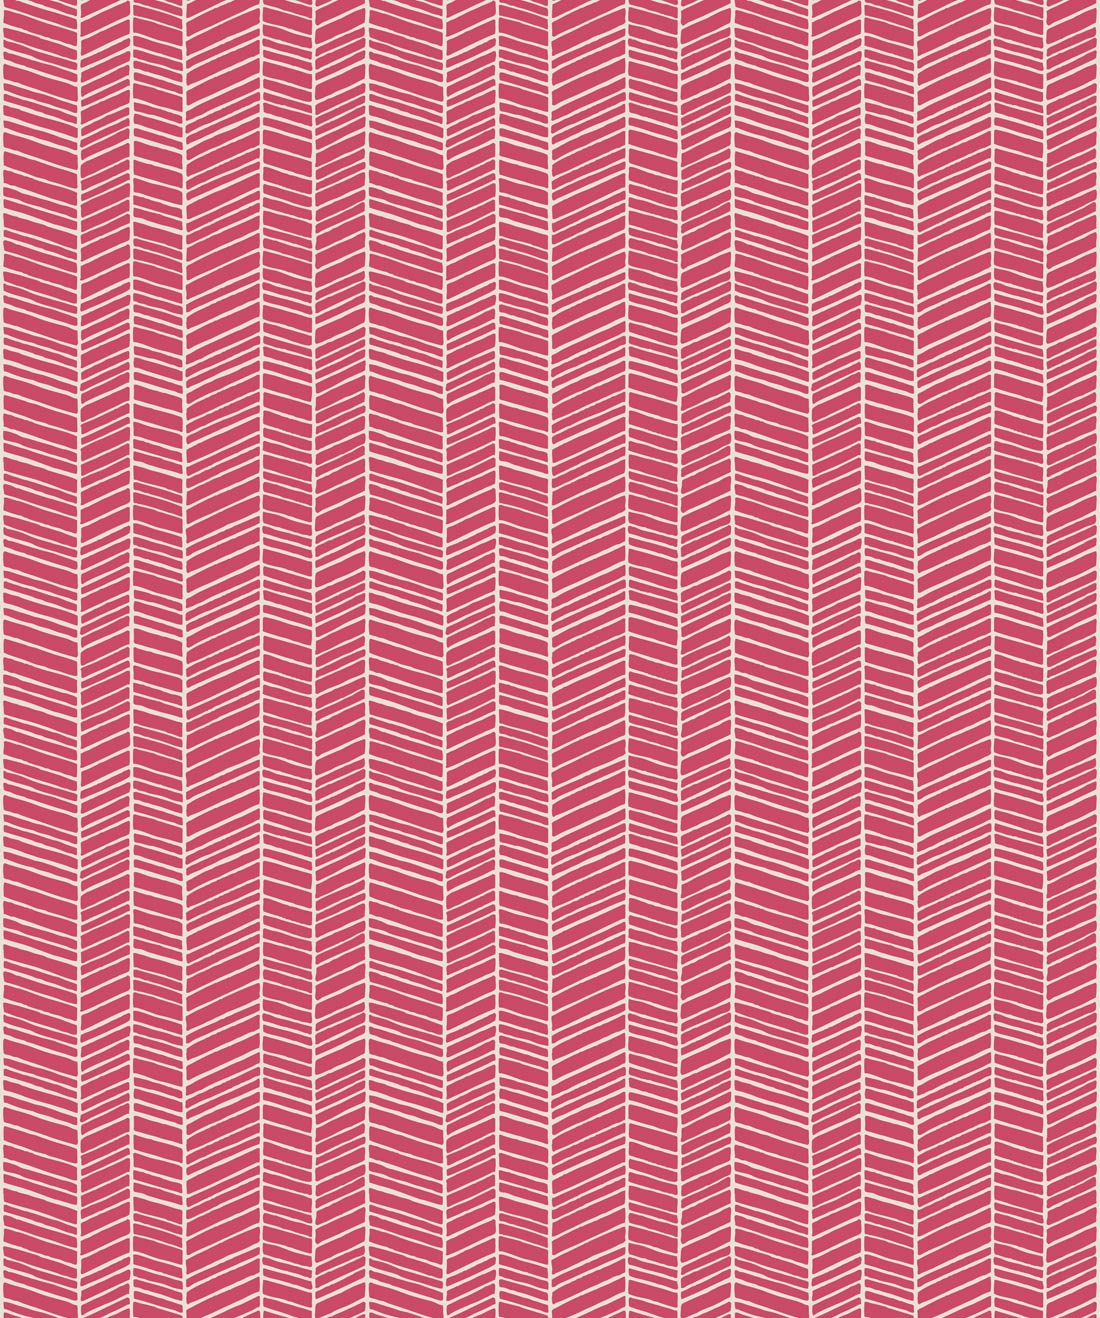 Herringbone Wallpaper Pink Quince